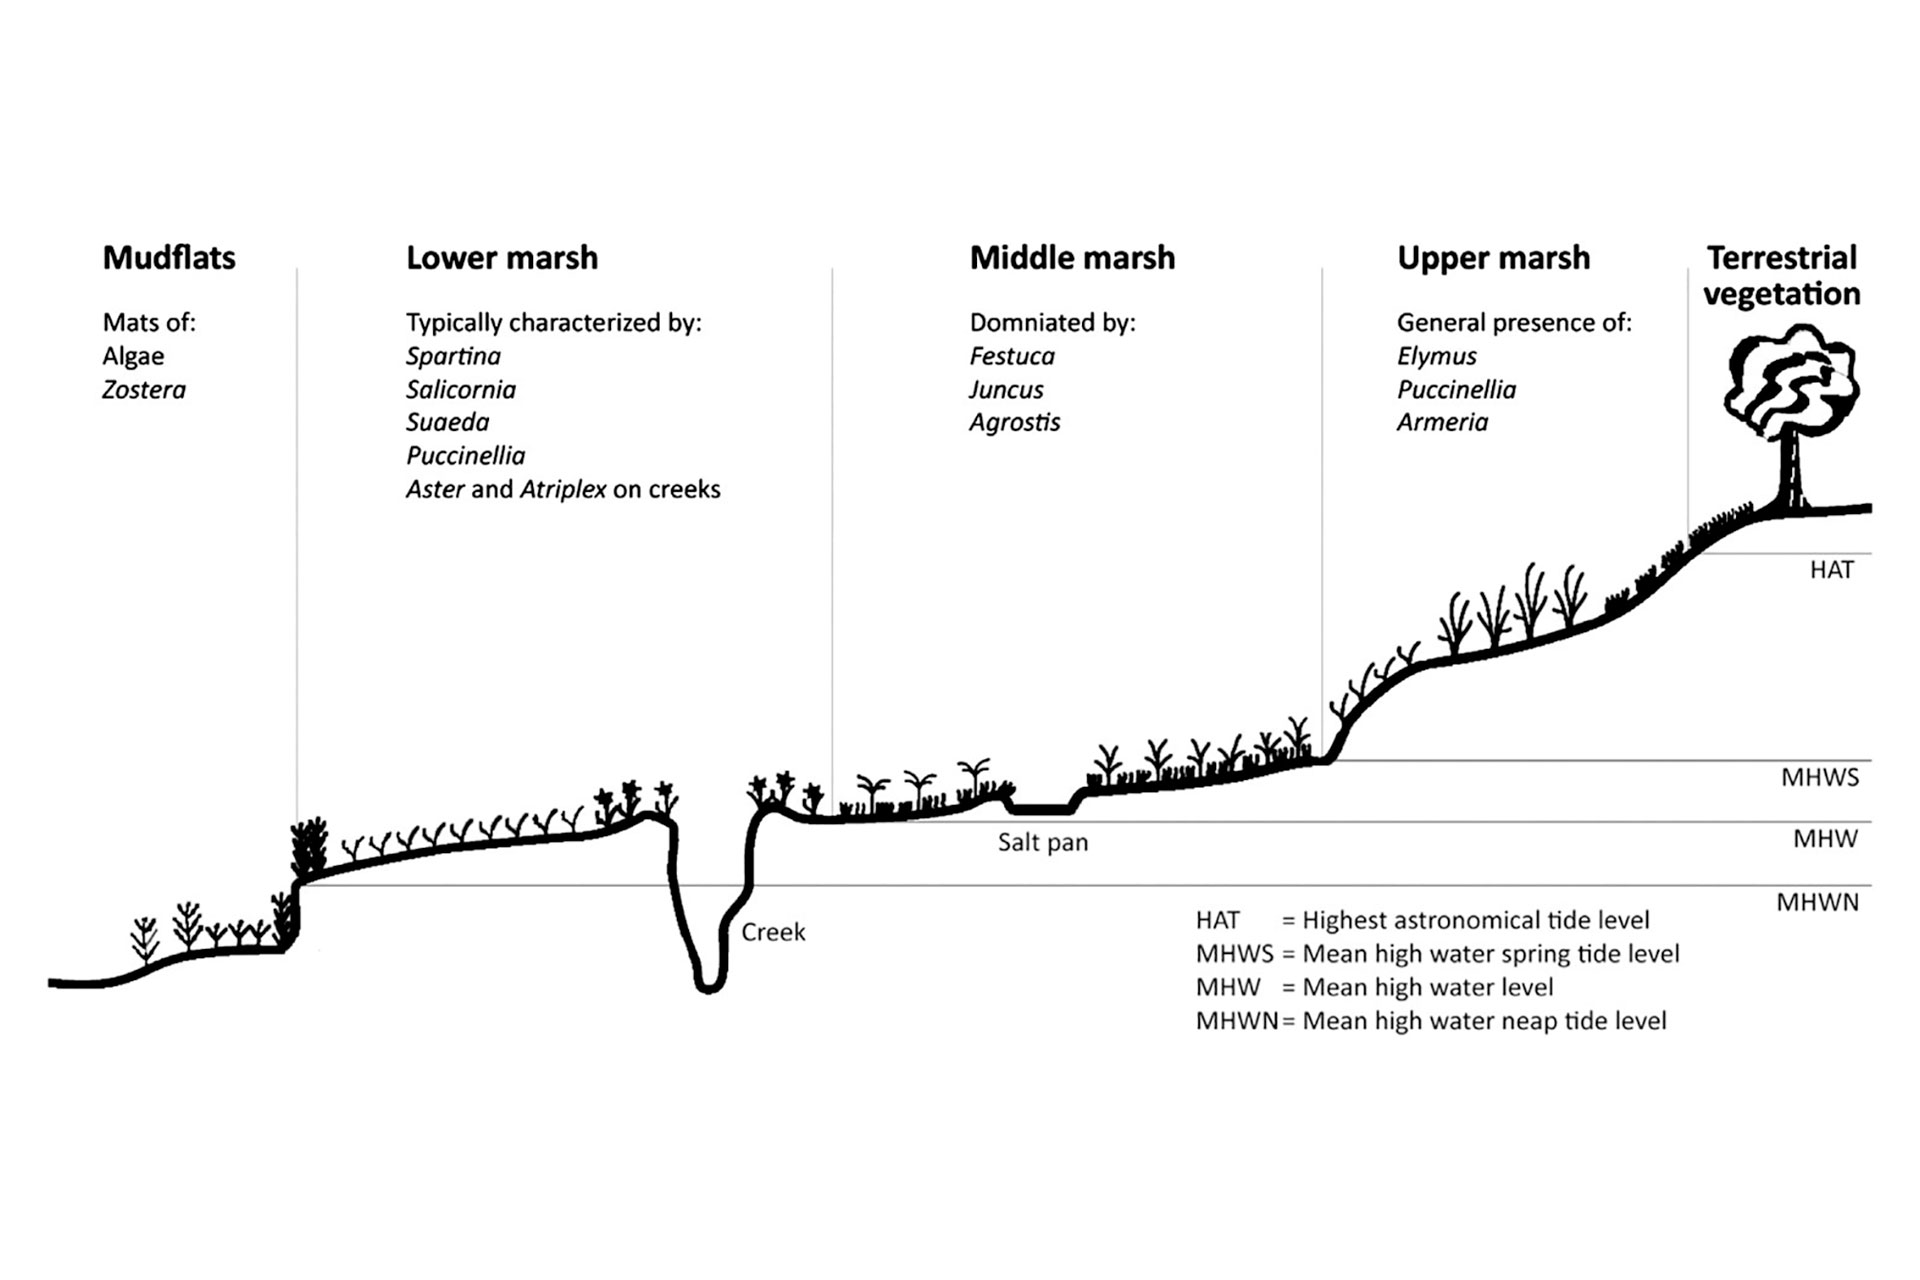 Indicative UK intertidal mudflat and saltmarsh profile. Adapted from Foster et al. (2013). Tides: HAT: highest astronomical tides; MHWS: mean high water springs; MHW: mean high water; MHWN: mean high water neaps.